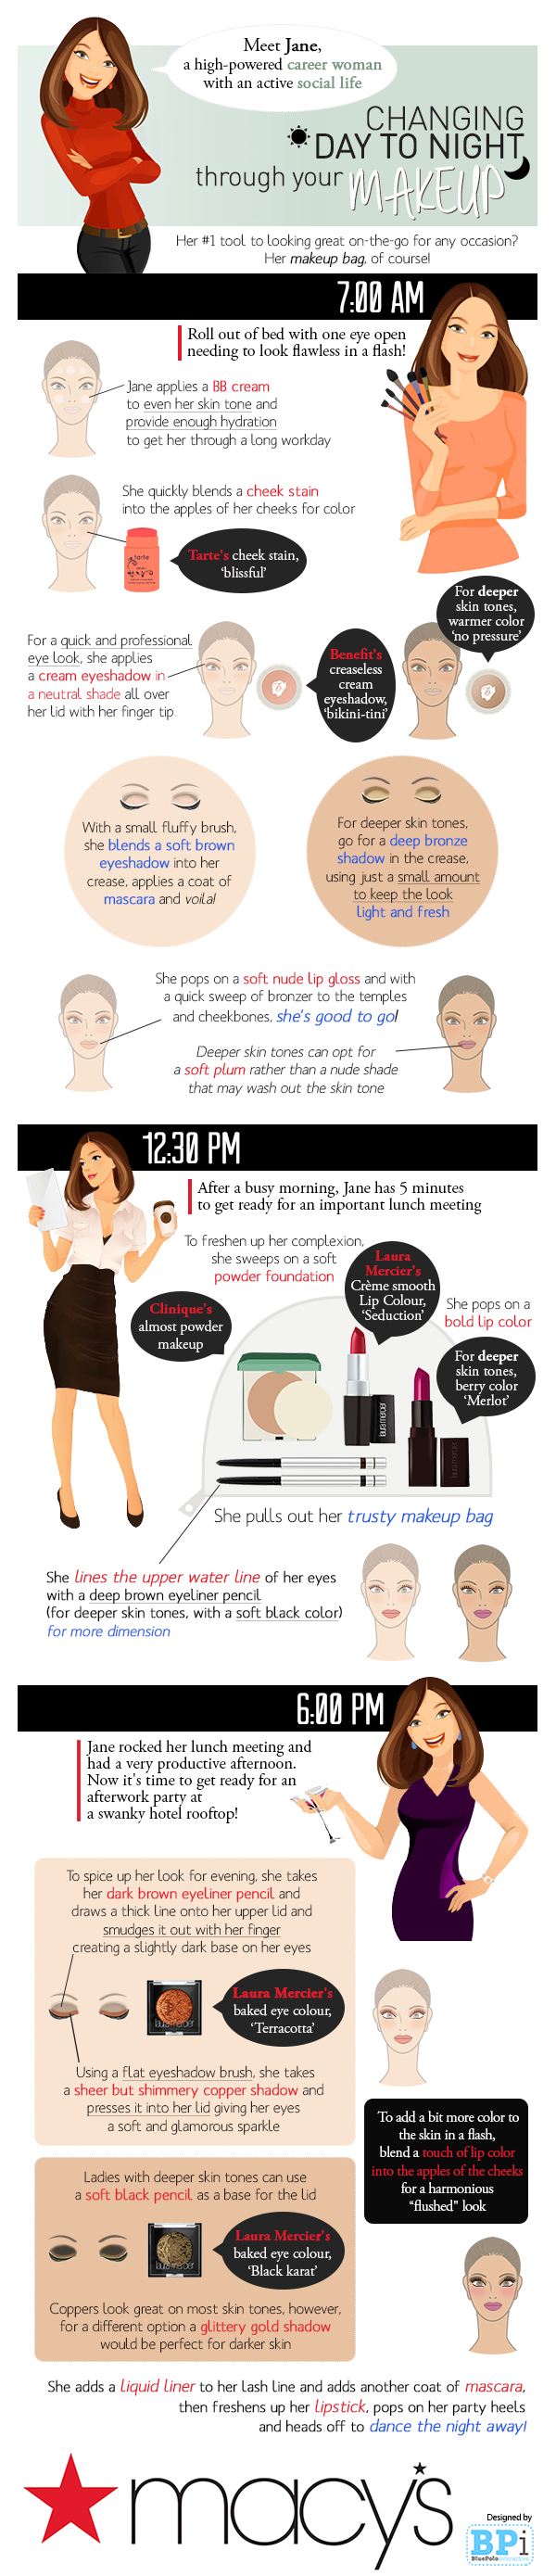 Macys_changing-from-day-to-night-through-your-makeup